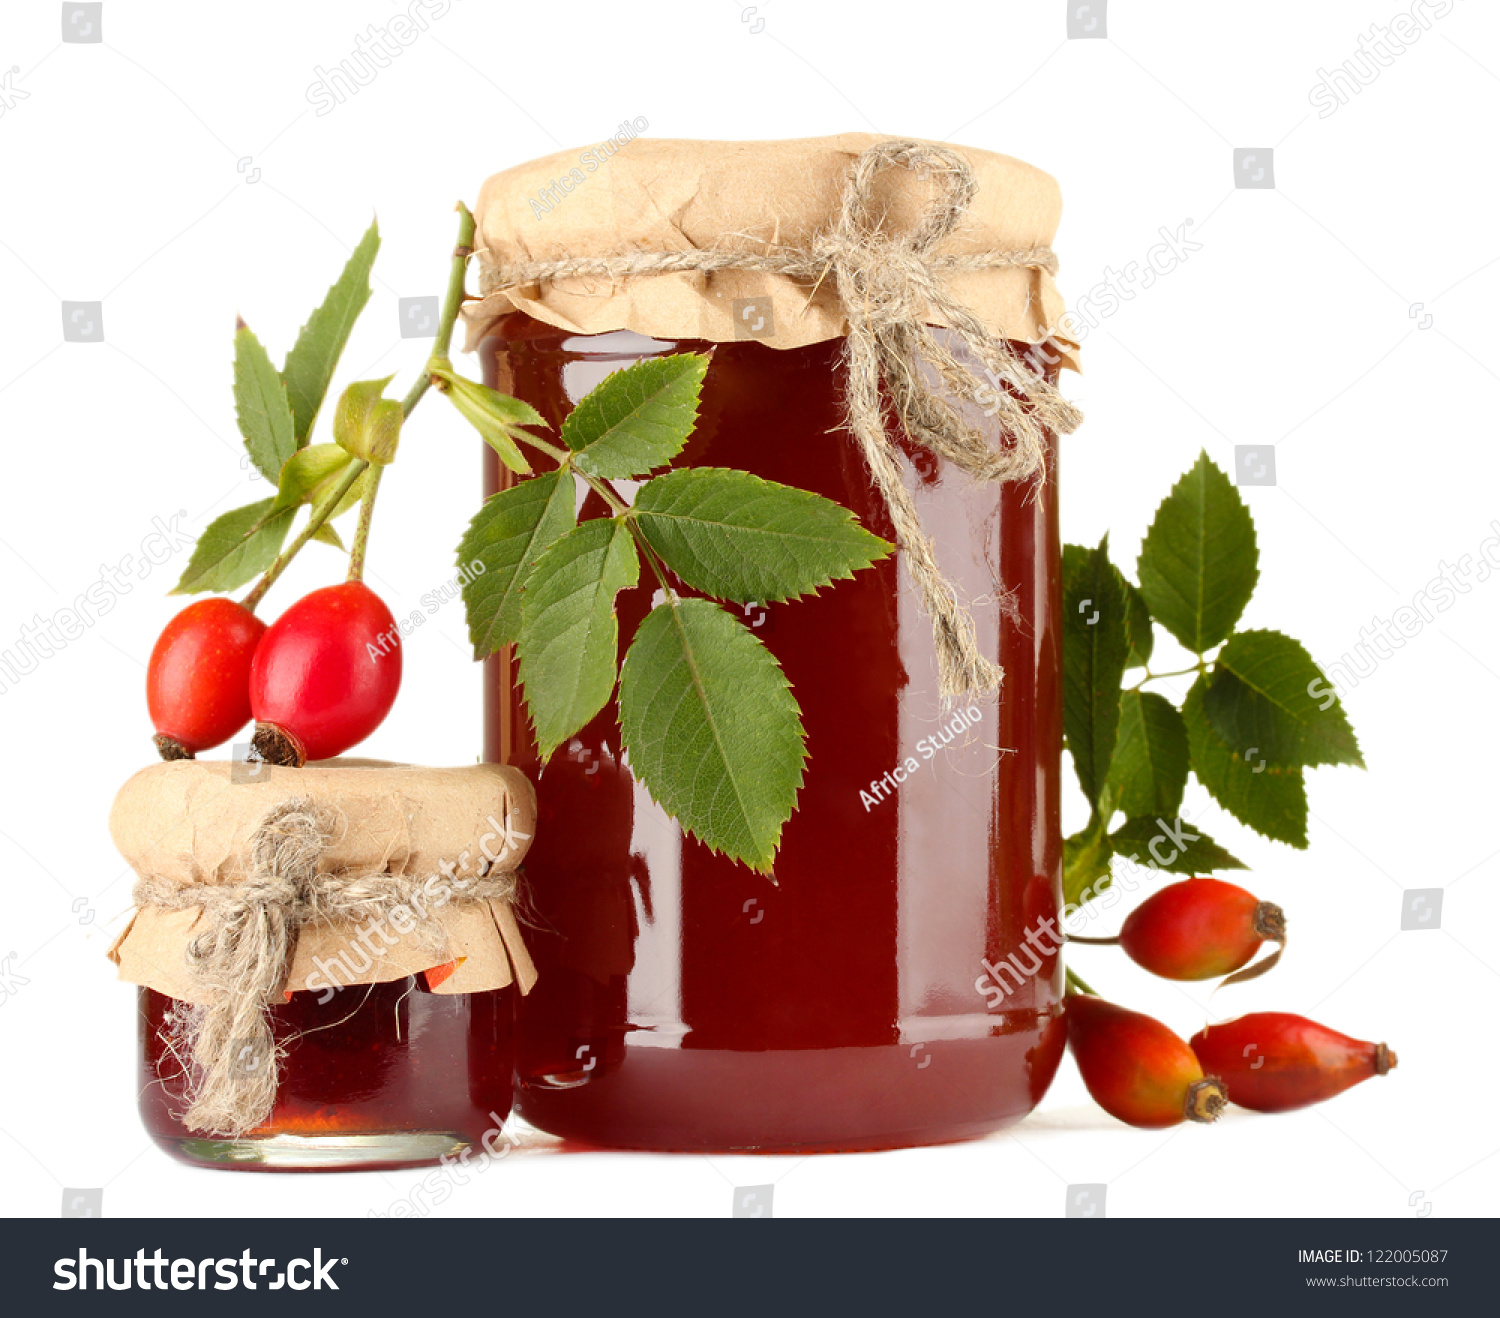 Jars with hip roses jam and ripe berries isolated on white stock photo 122005087 shutterstock - What to do with rosehips jelly and vinegar ...